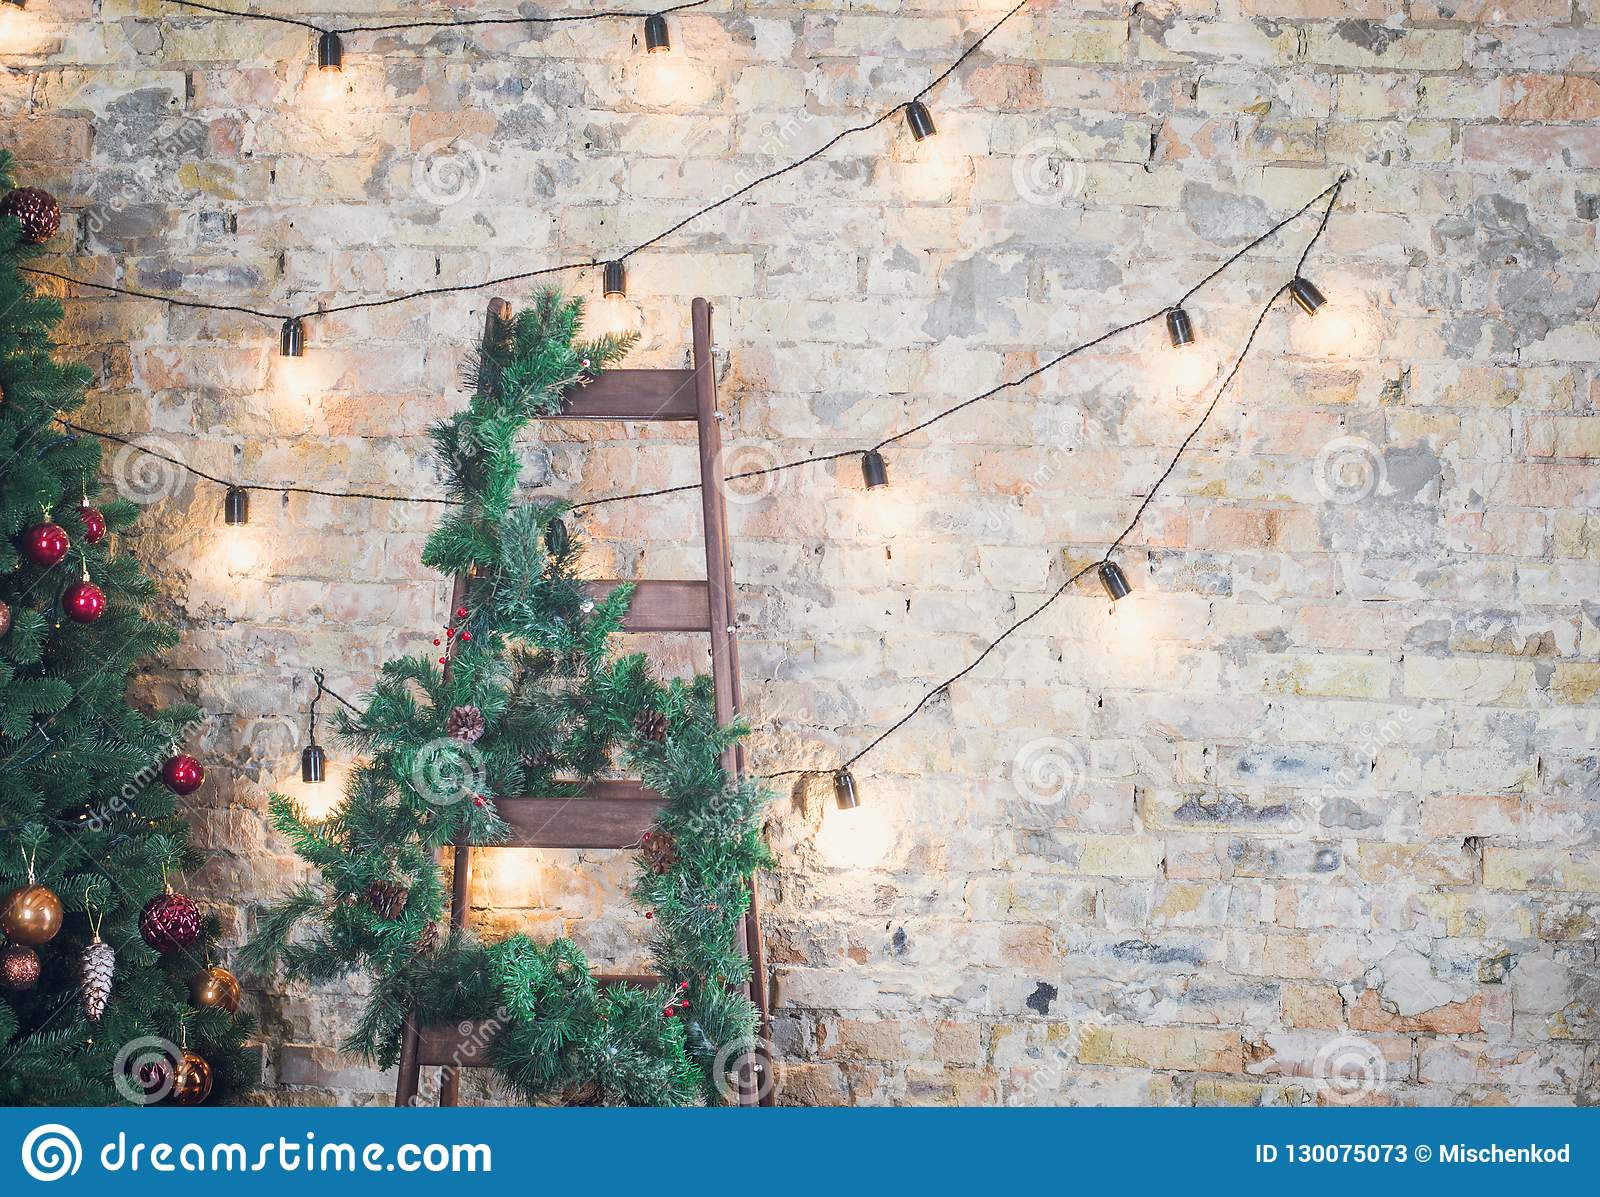 Christmas Tree With Garlands On A Brick Wall Background Stock Image Image Of Copy Ornament 130075073